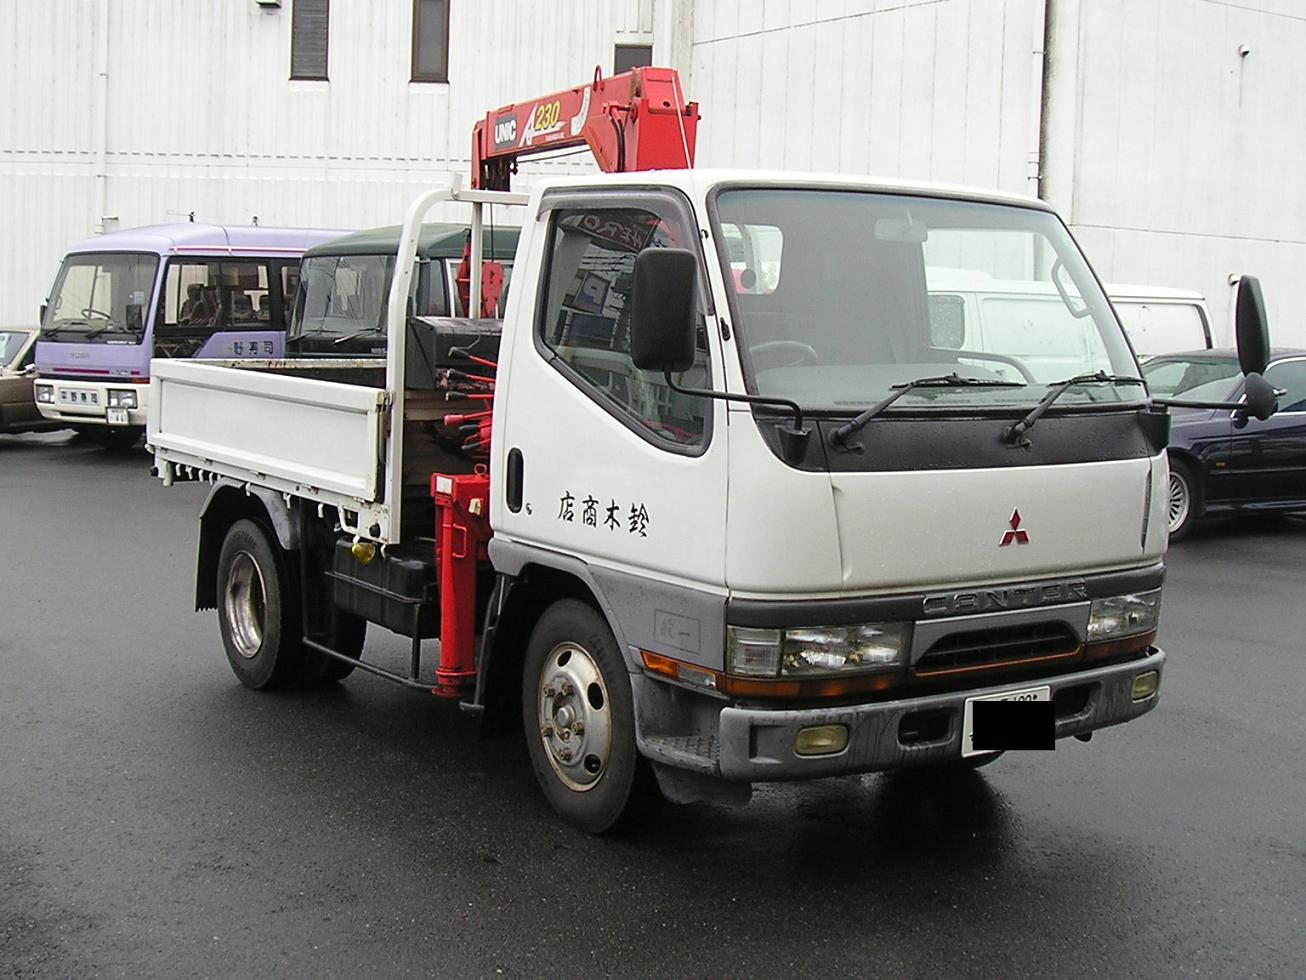 1997 Mitsubishi Canter Truck 2Ton Crane Japanese used truck